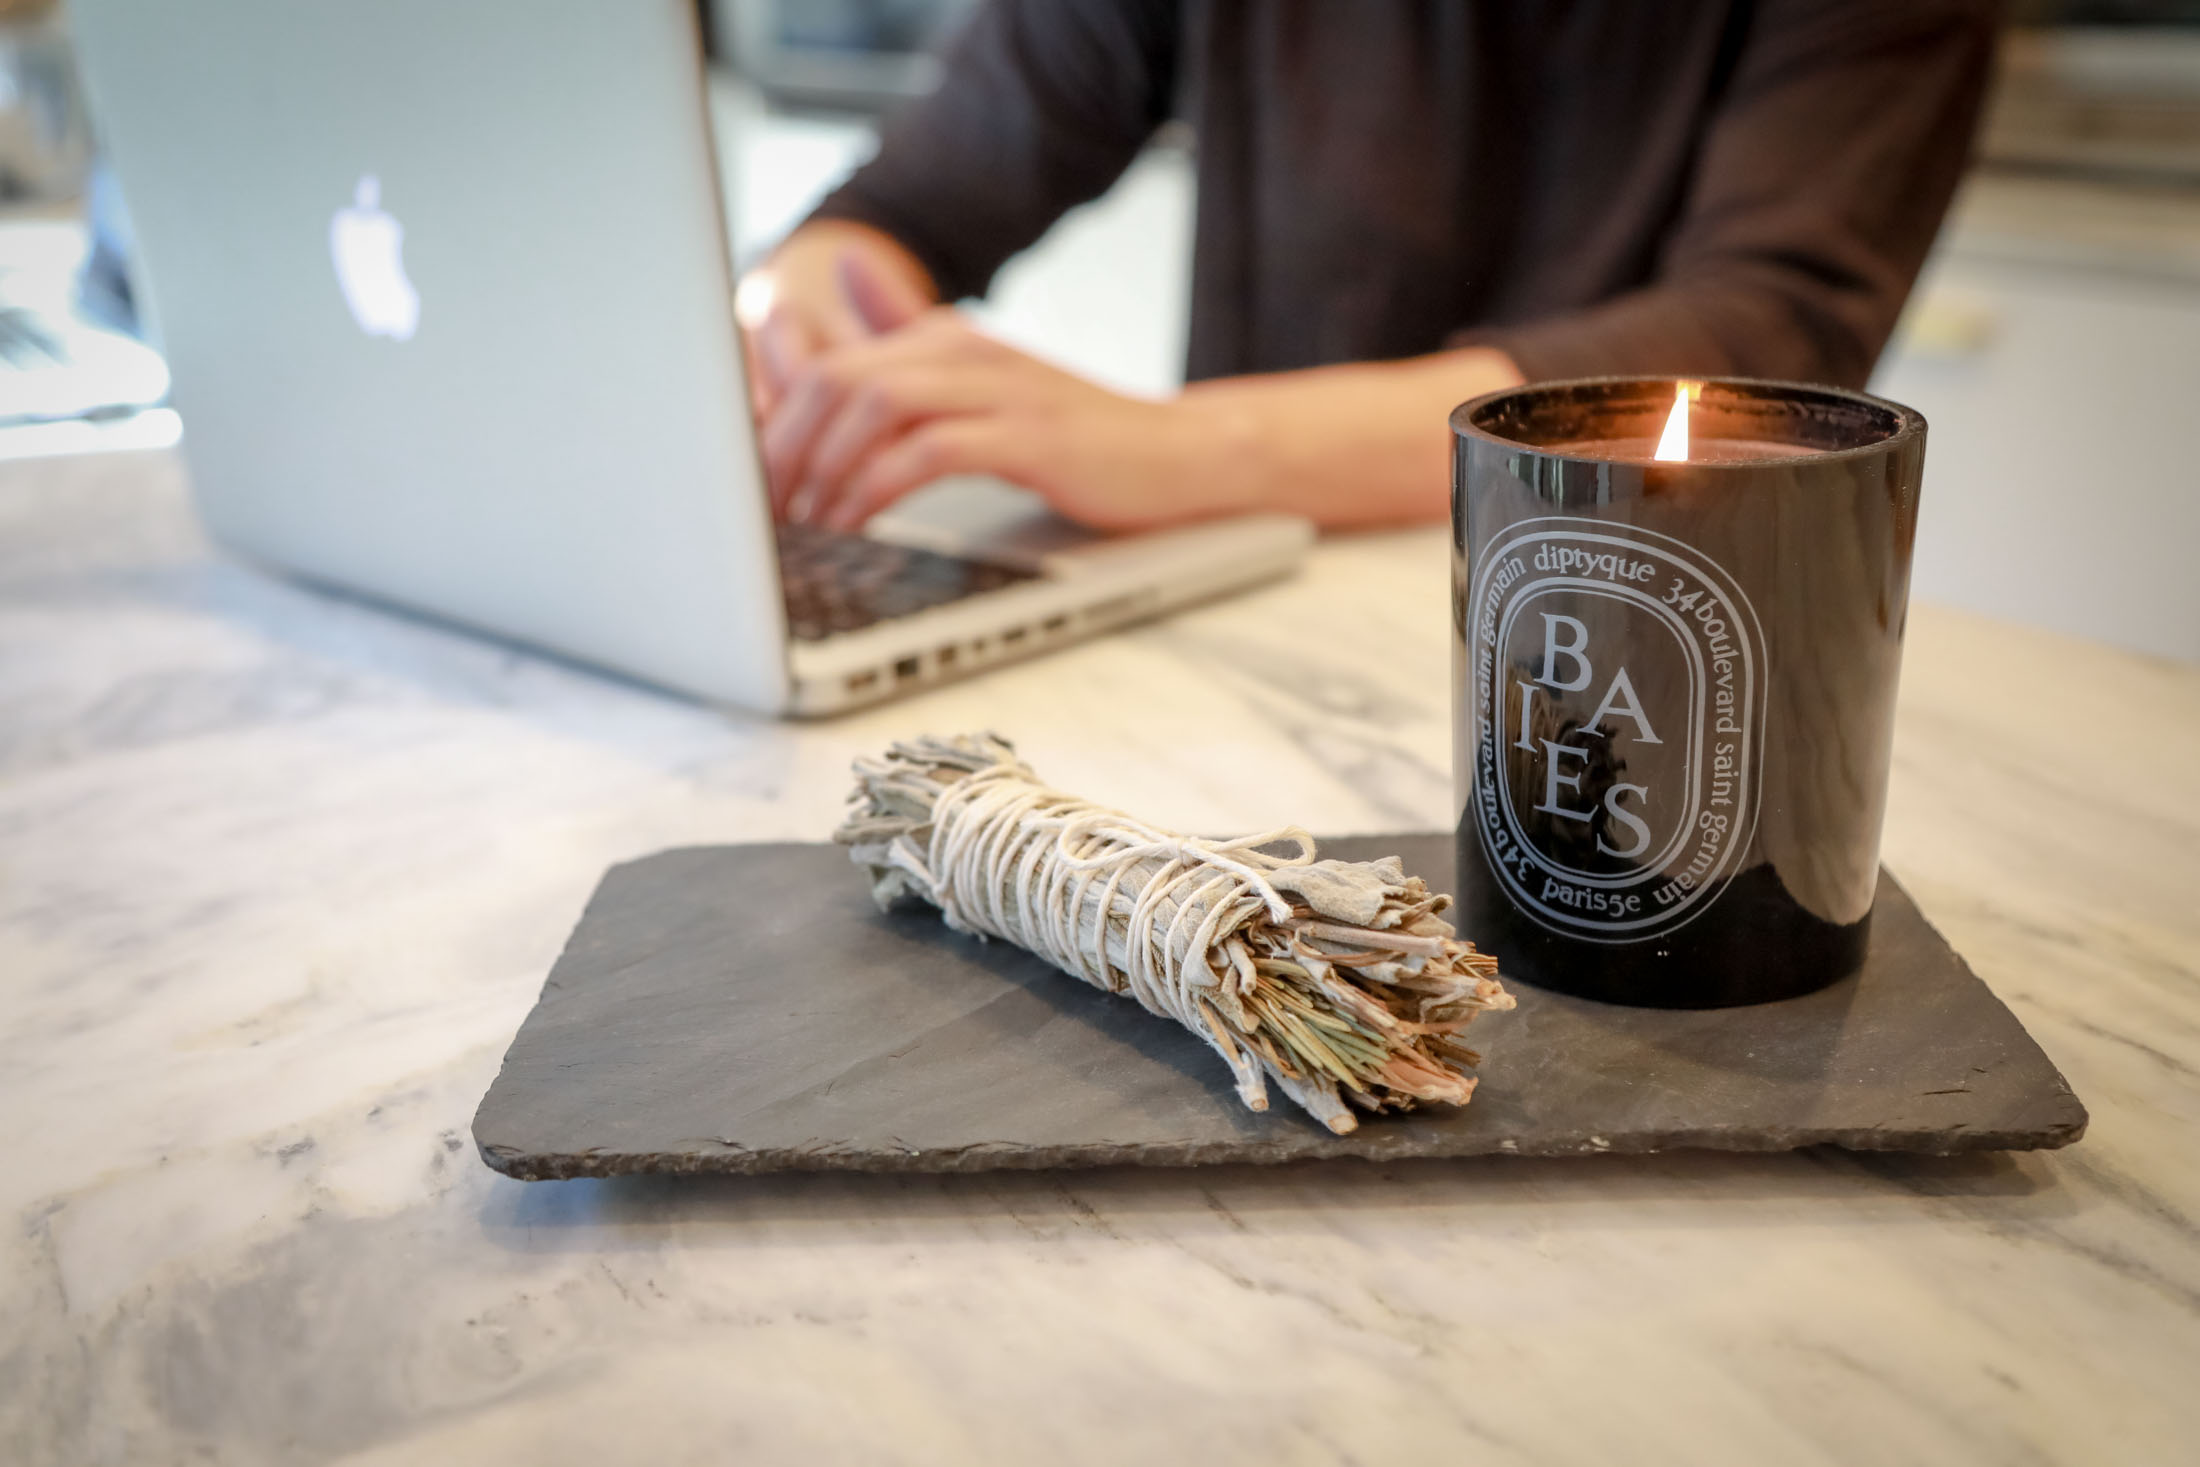 It's time to get cuddle up! Wrap yourself in a super-soft throw & light a candle or smudge stick to cozy the days & nights away for cold-weather happiness.